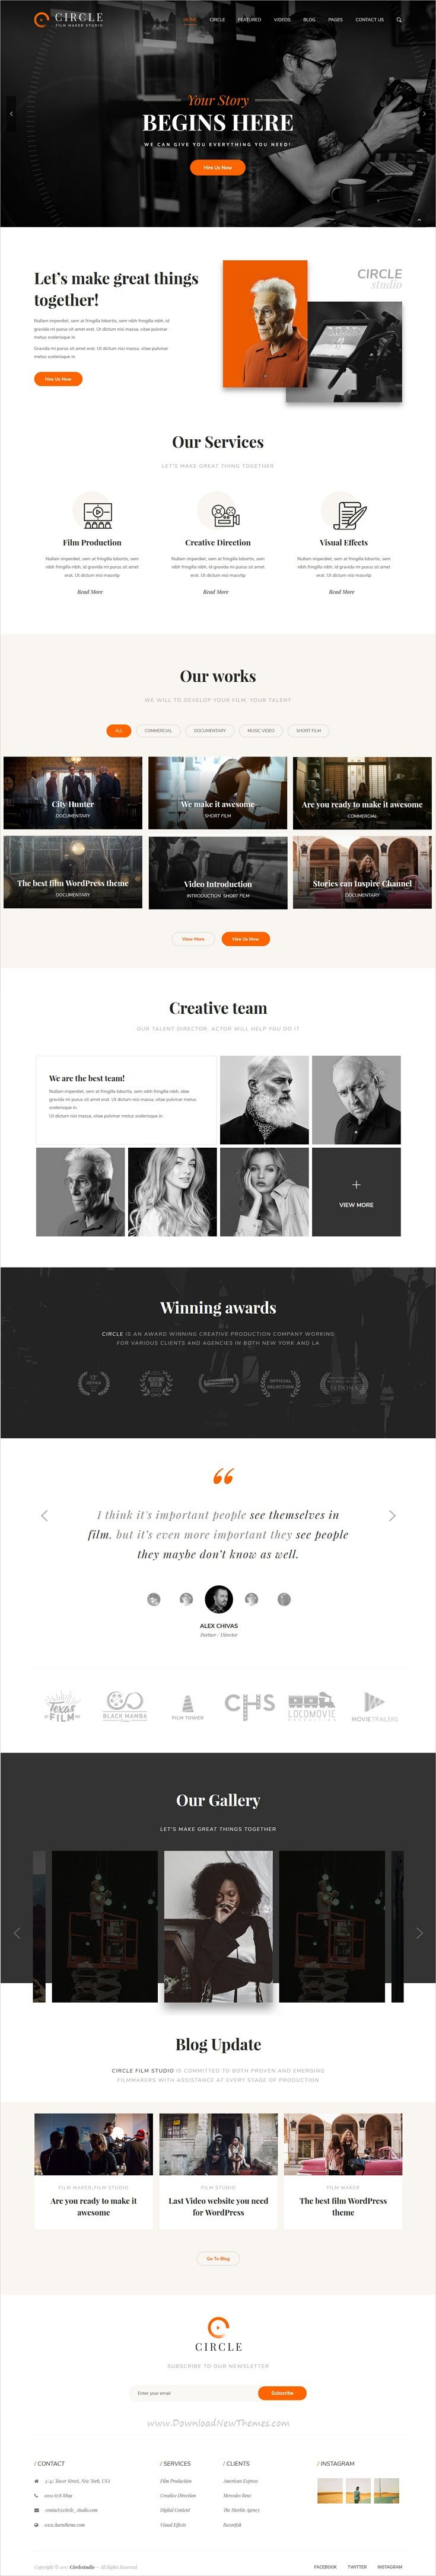 Circle is clean and modern design 7in1 responsive #WordPress theme for multipurpose #film, Video and movie production companies website download now #webdesign